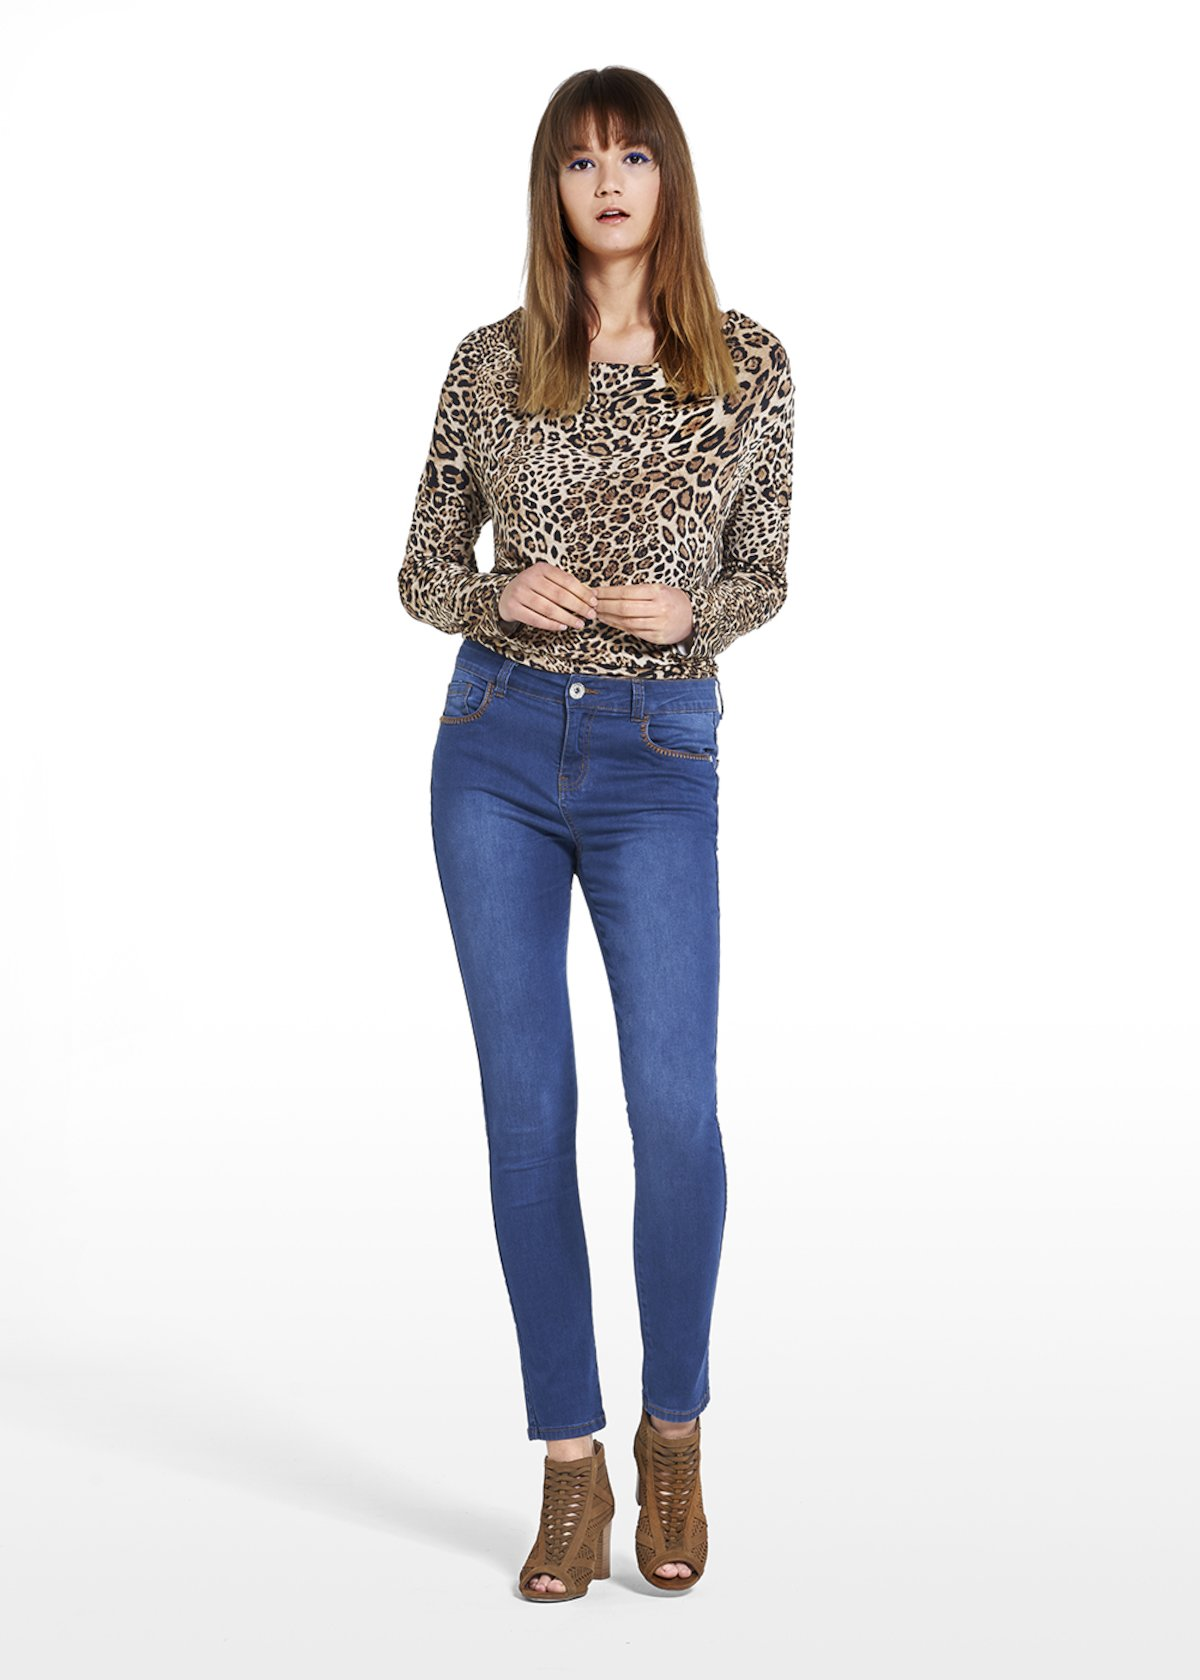 Jeans Denver with knitted stitch detail around the pockets - Medium Denim - Woman - Category image